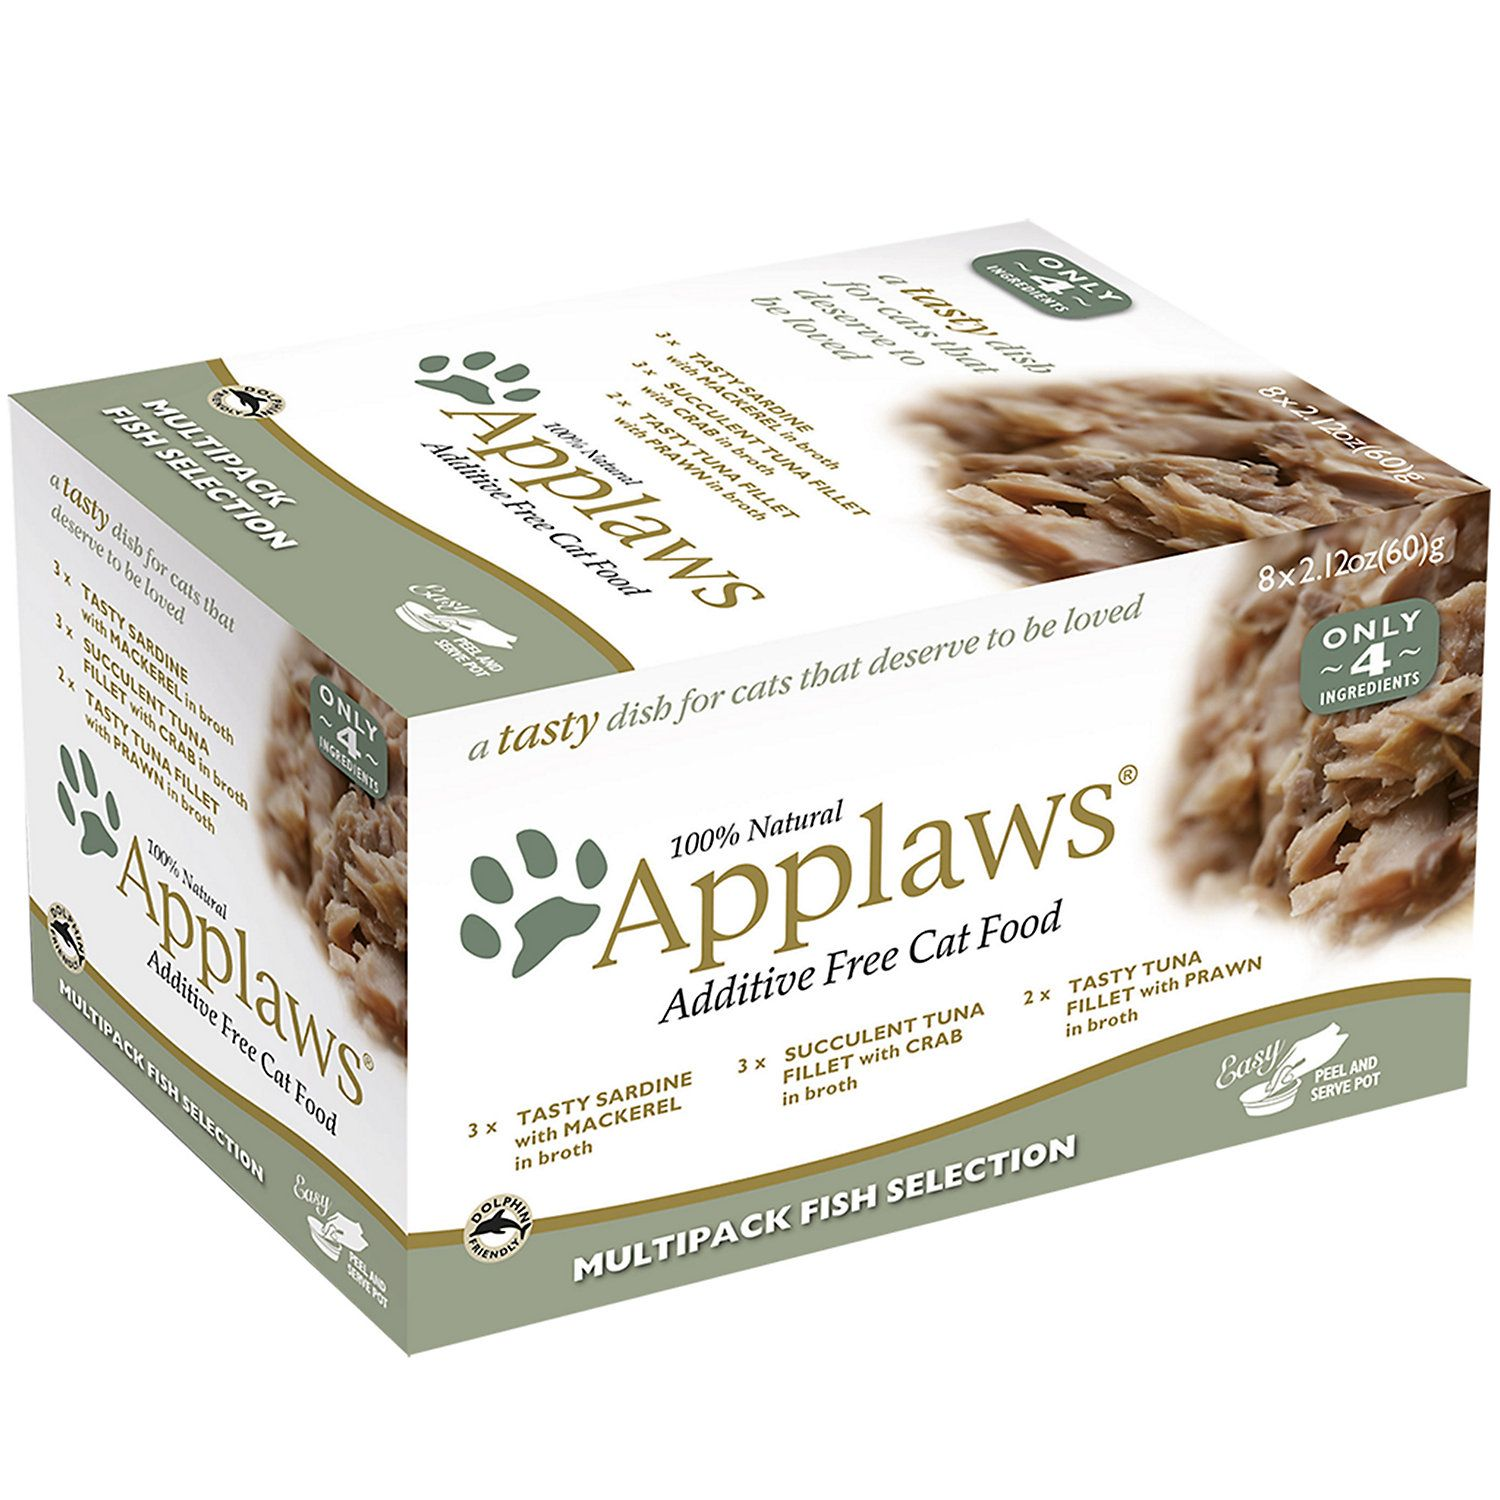 Applaws Fish Selection Multipack Wet Cat Food, 2.12 oz